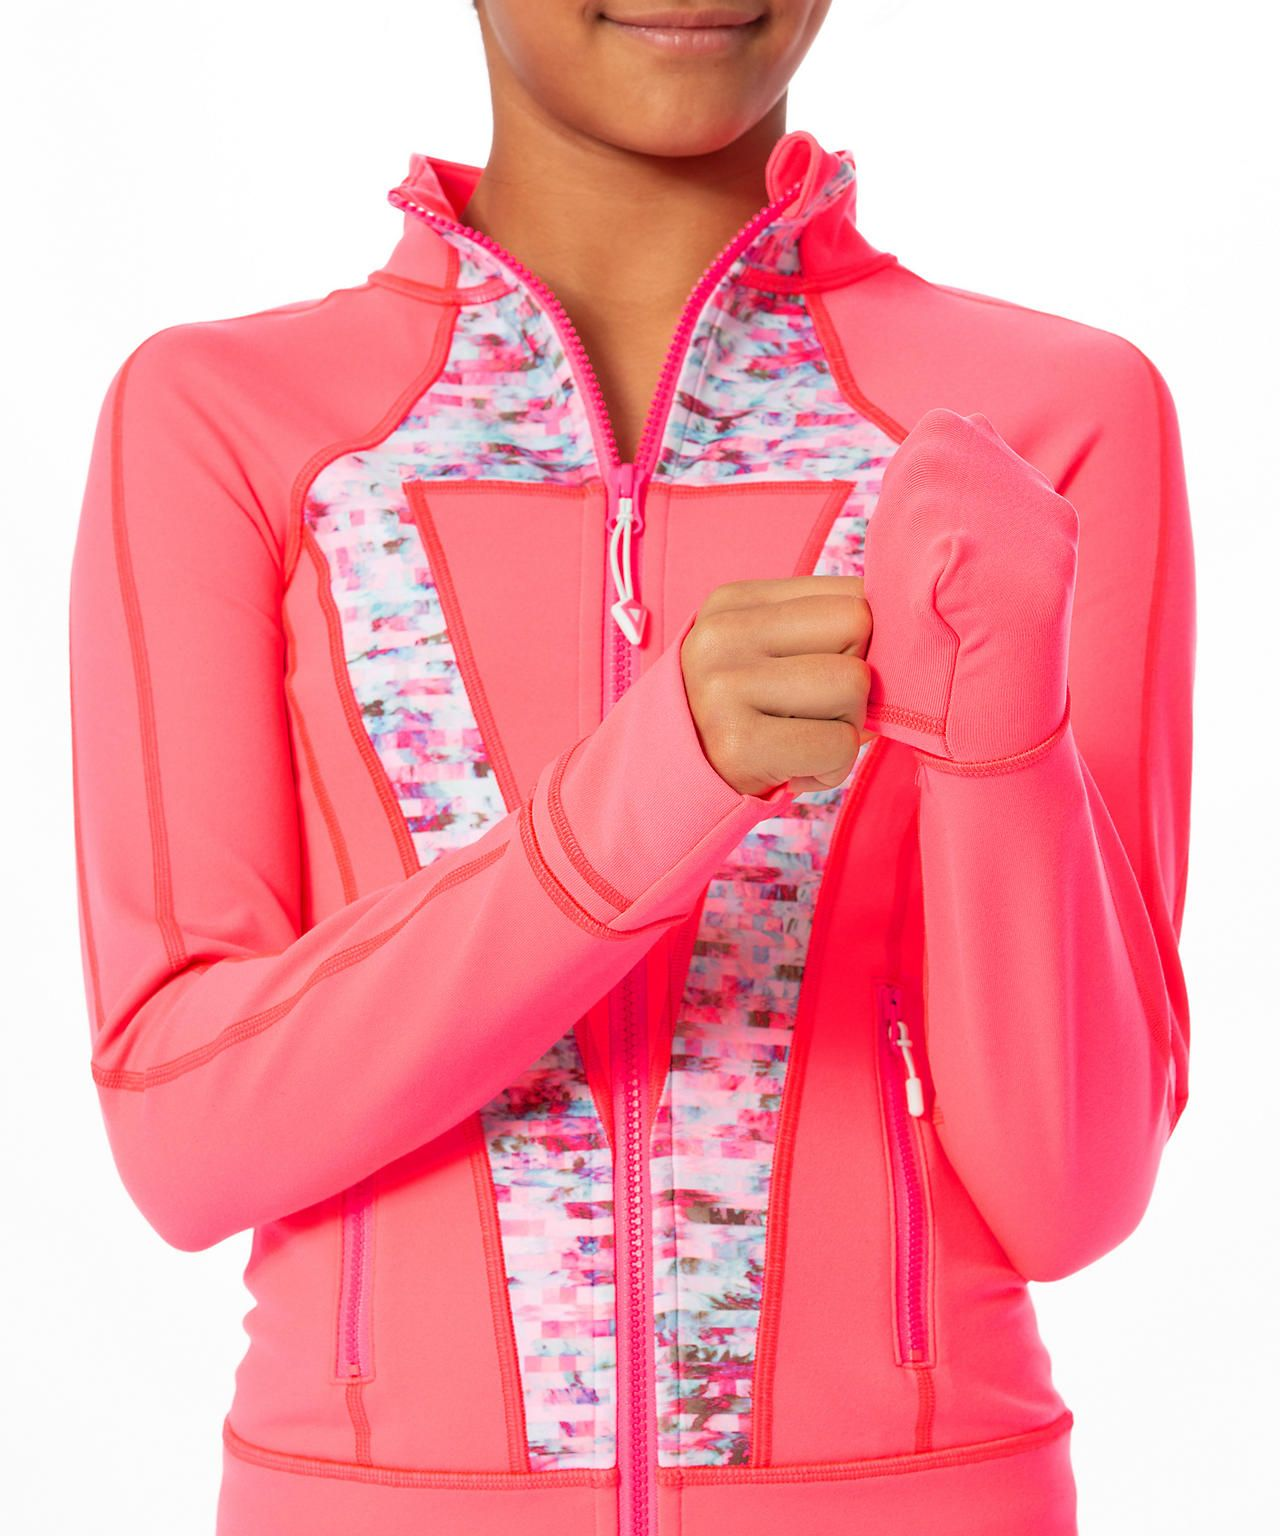 Shop The Perfect Your Practice Jacket Girls Jackets Outerwear Stretch After Practice In This Sweat Wick Technical Clothing Girls Jacket Outerwear Jackets [ 1536 x 1280 Pixel ]